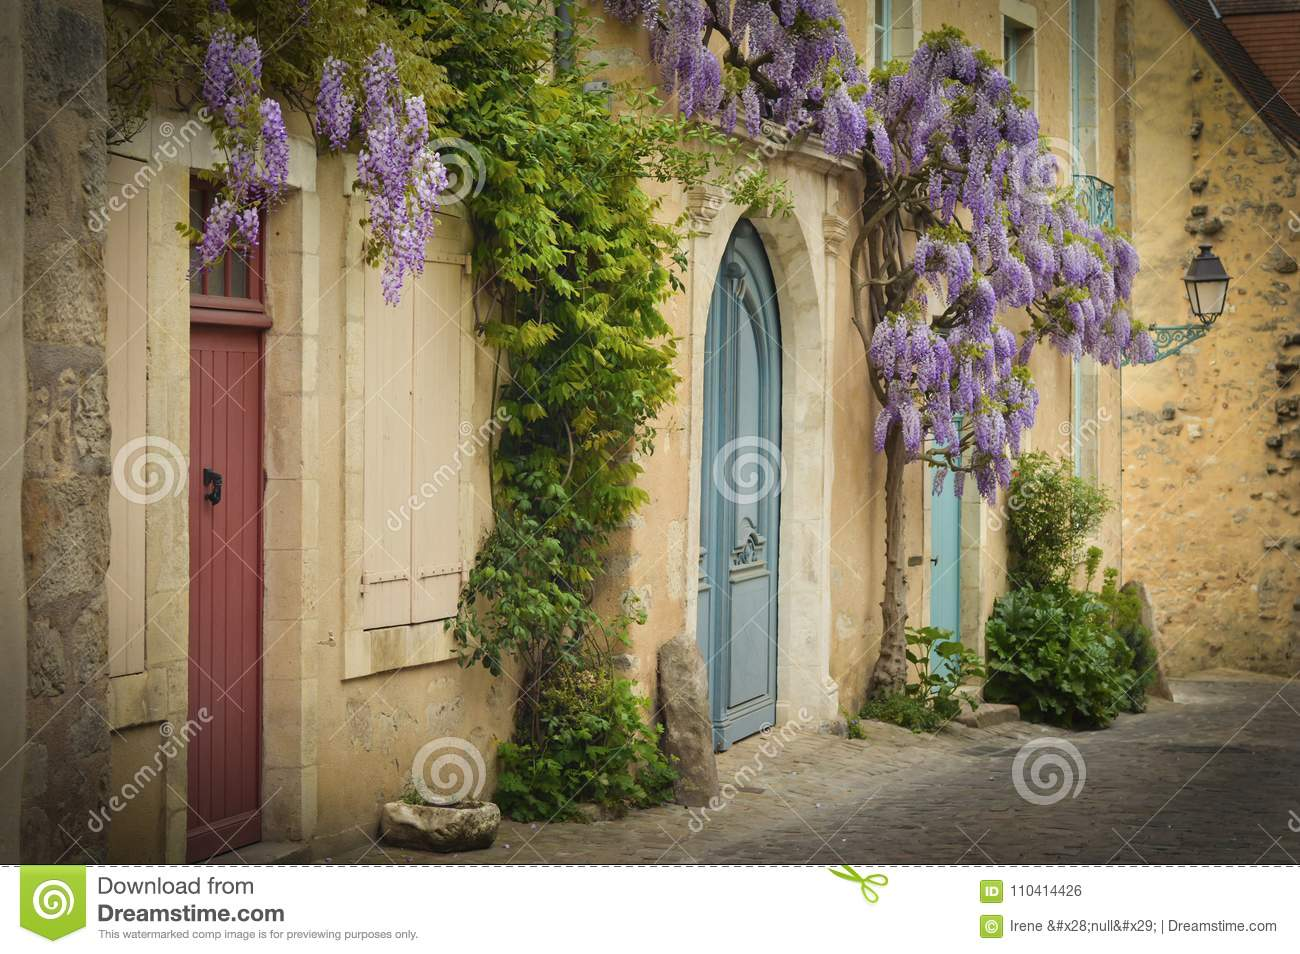 Old Wooden French Doors With Climbing Wisteria On The Wall Stock